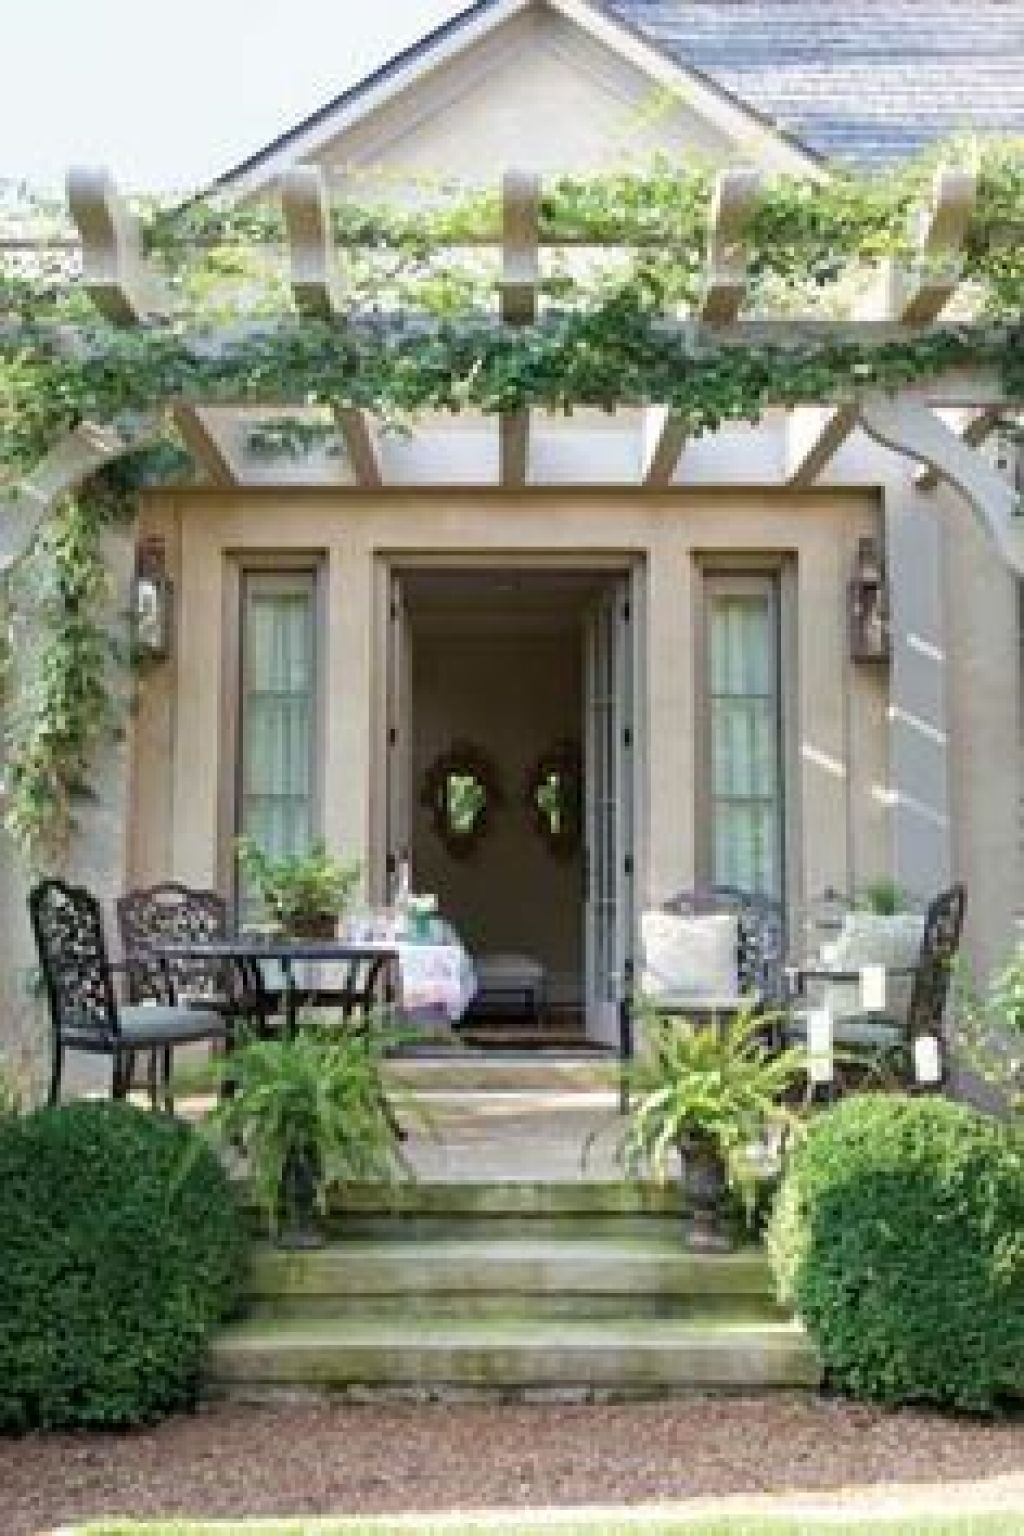 1000 ideas about front porch pergola on pinterest pergolas